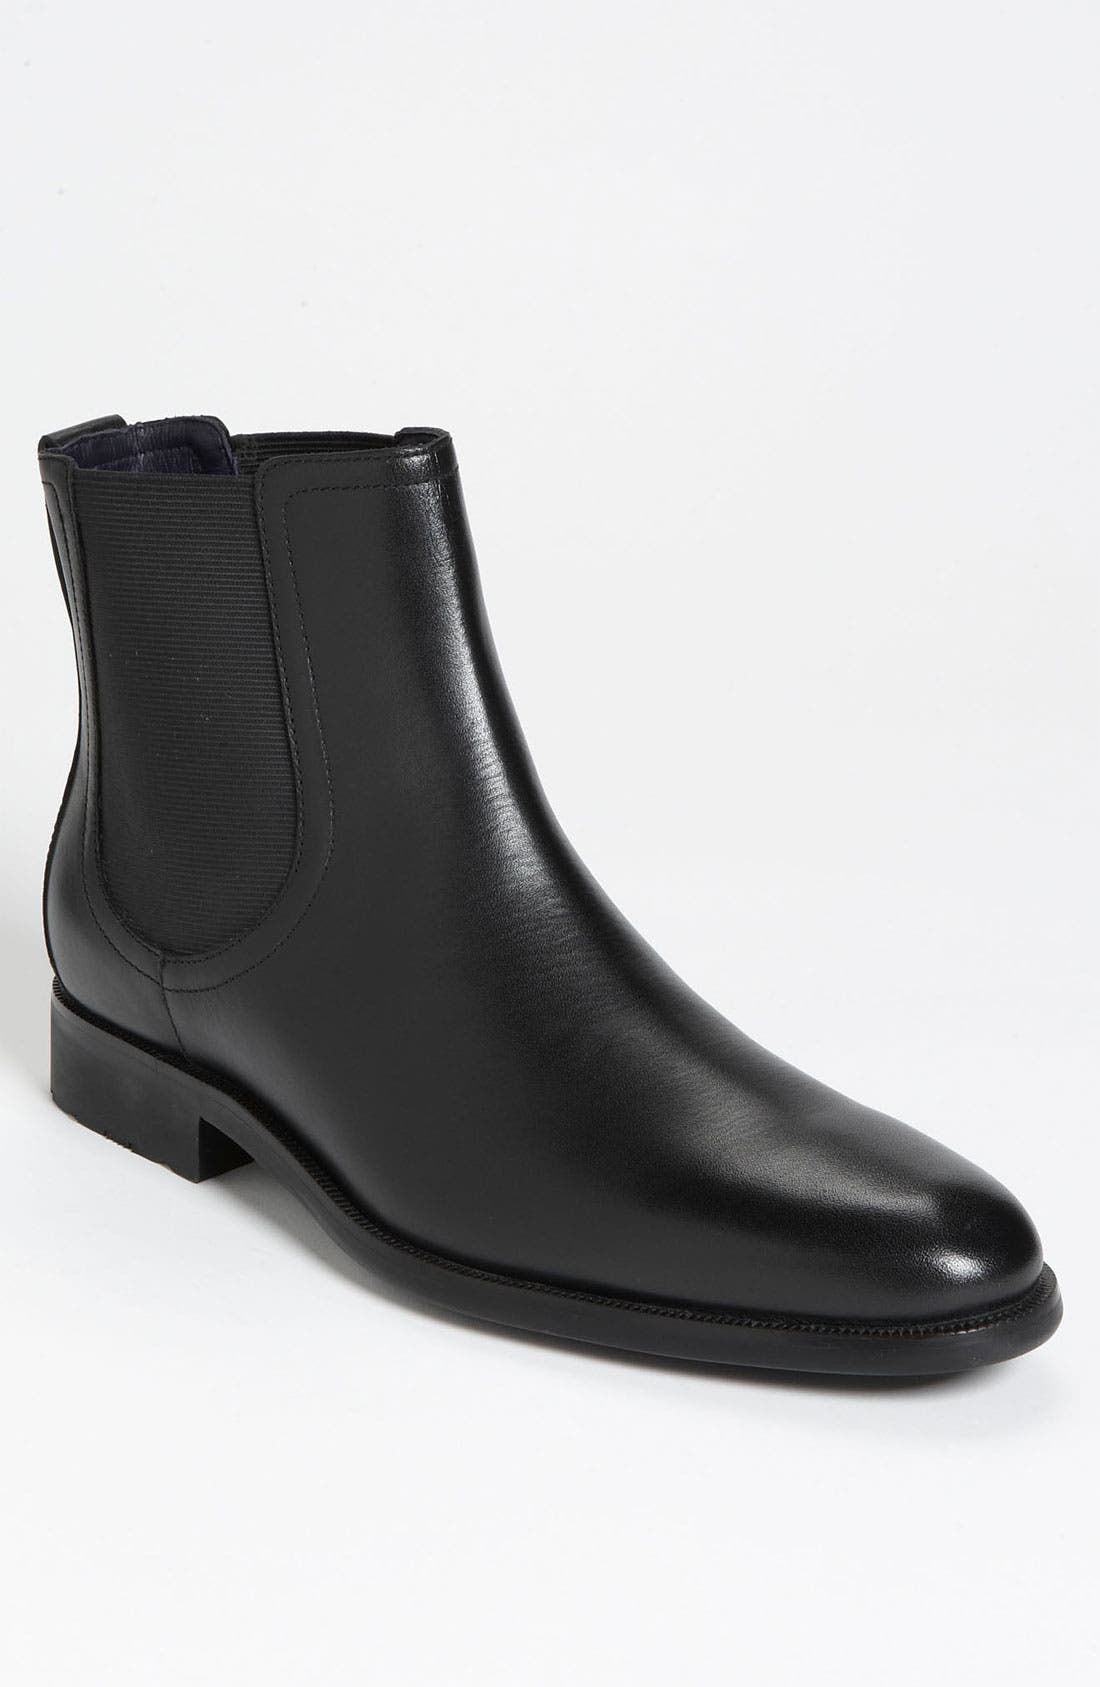 Main Image - Cole Haan 'Air Stanton' Chelsea Boot